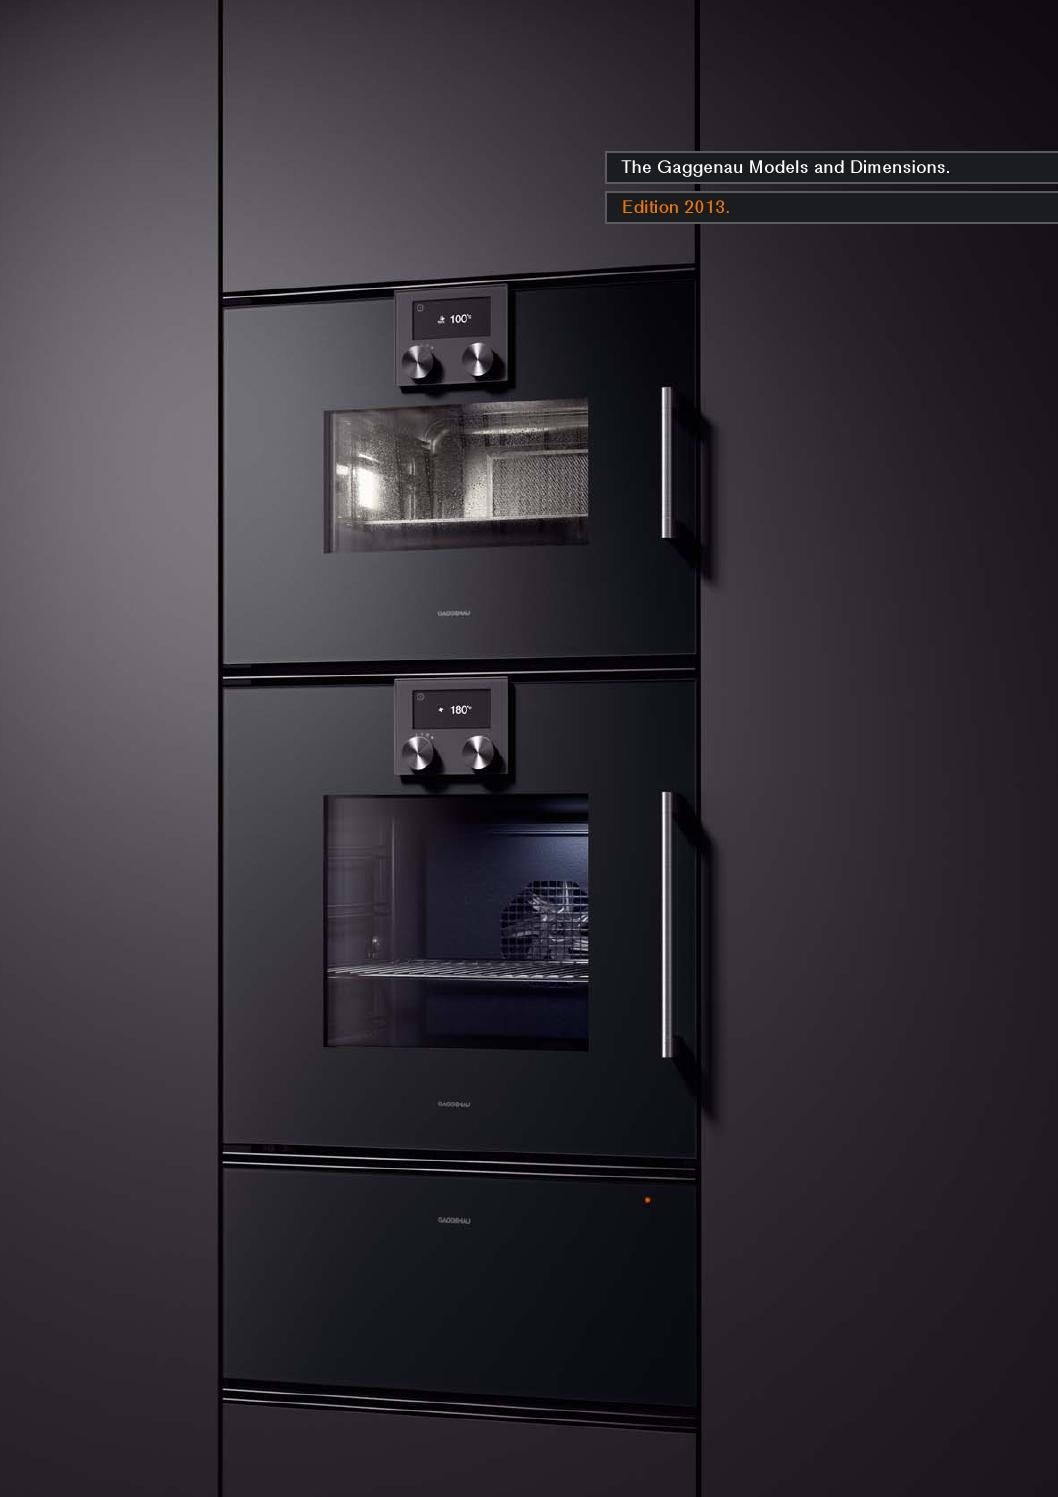 gaggenau models dimensions 2013 by kitchen appliances. Black Bedroom Furniture Sets. Home Design Ideas